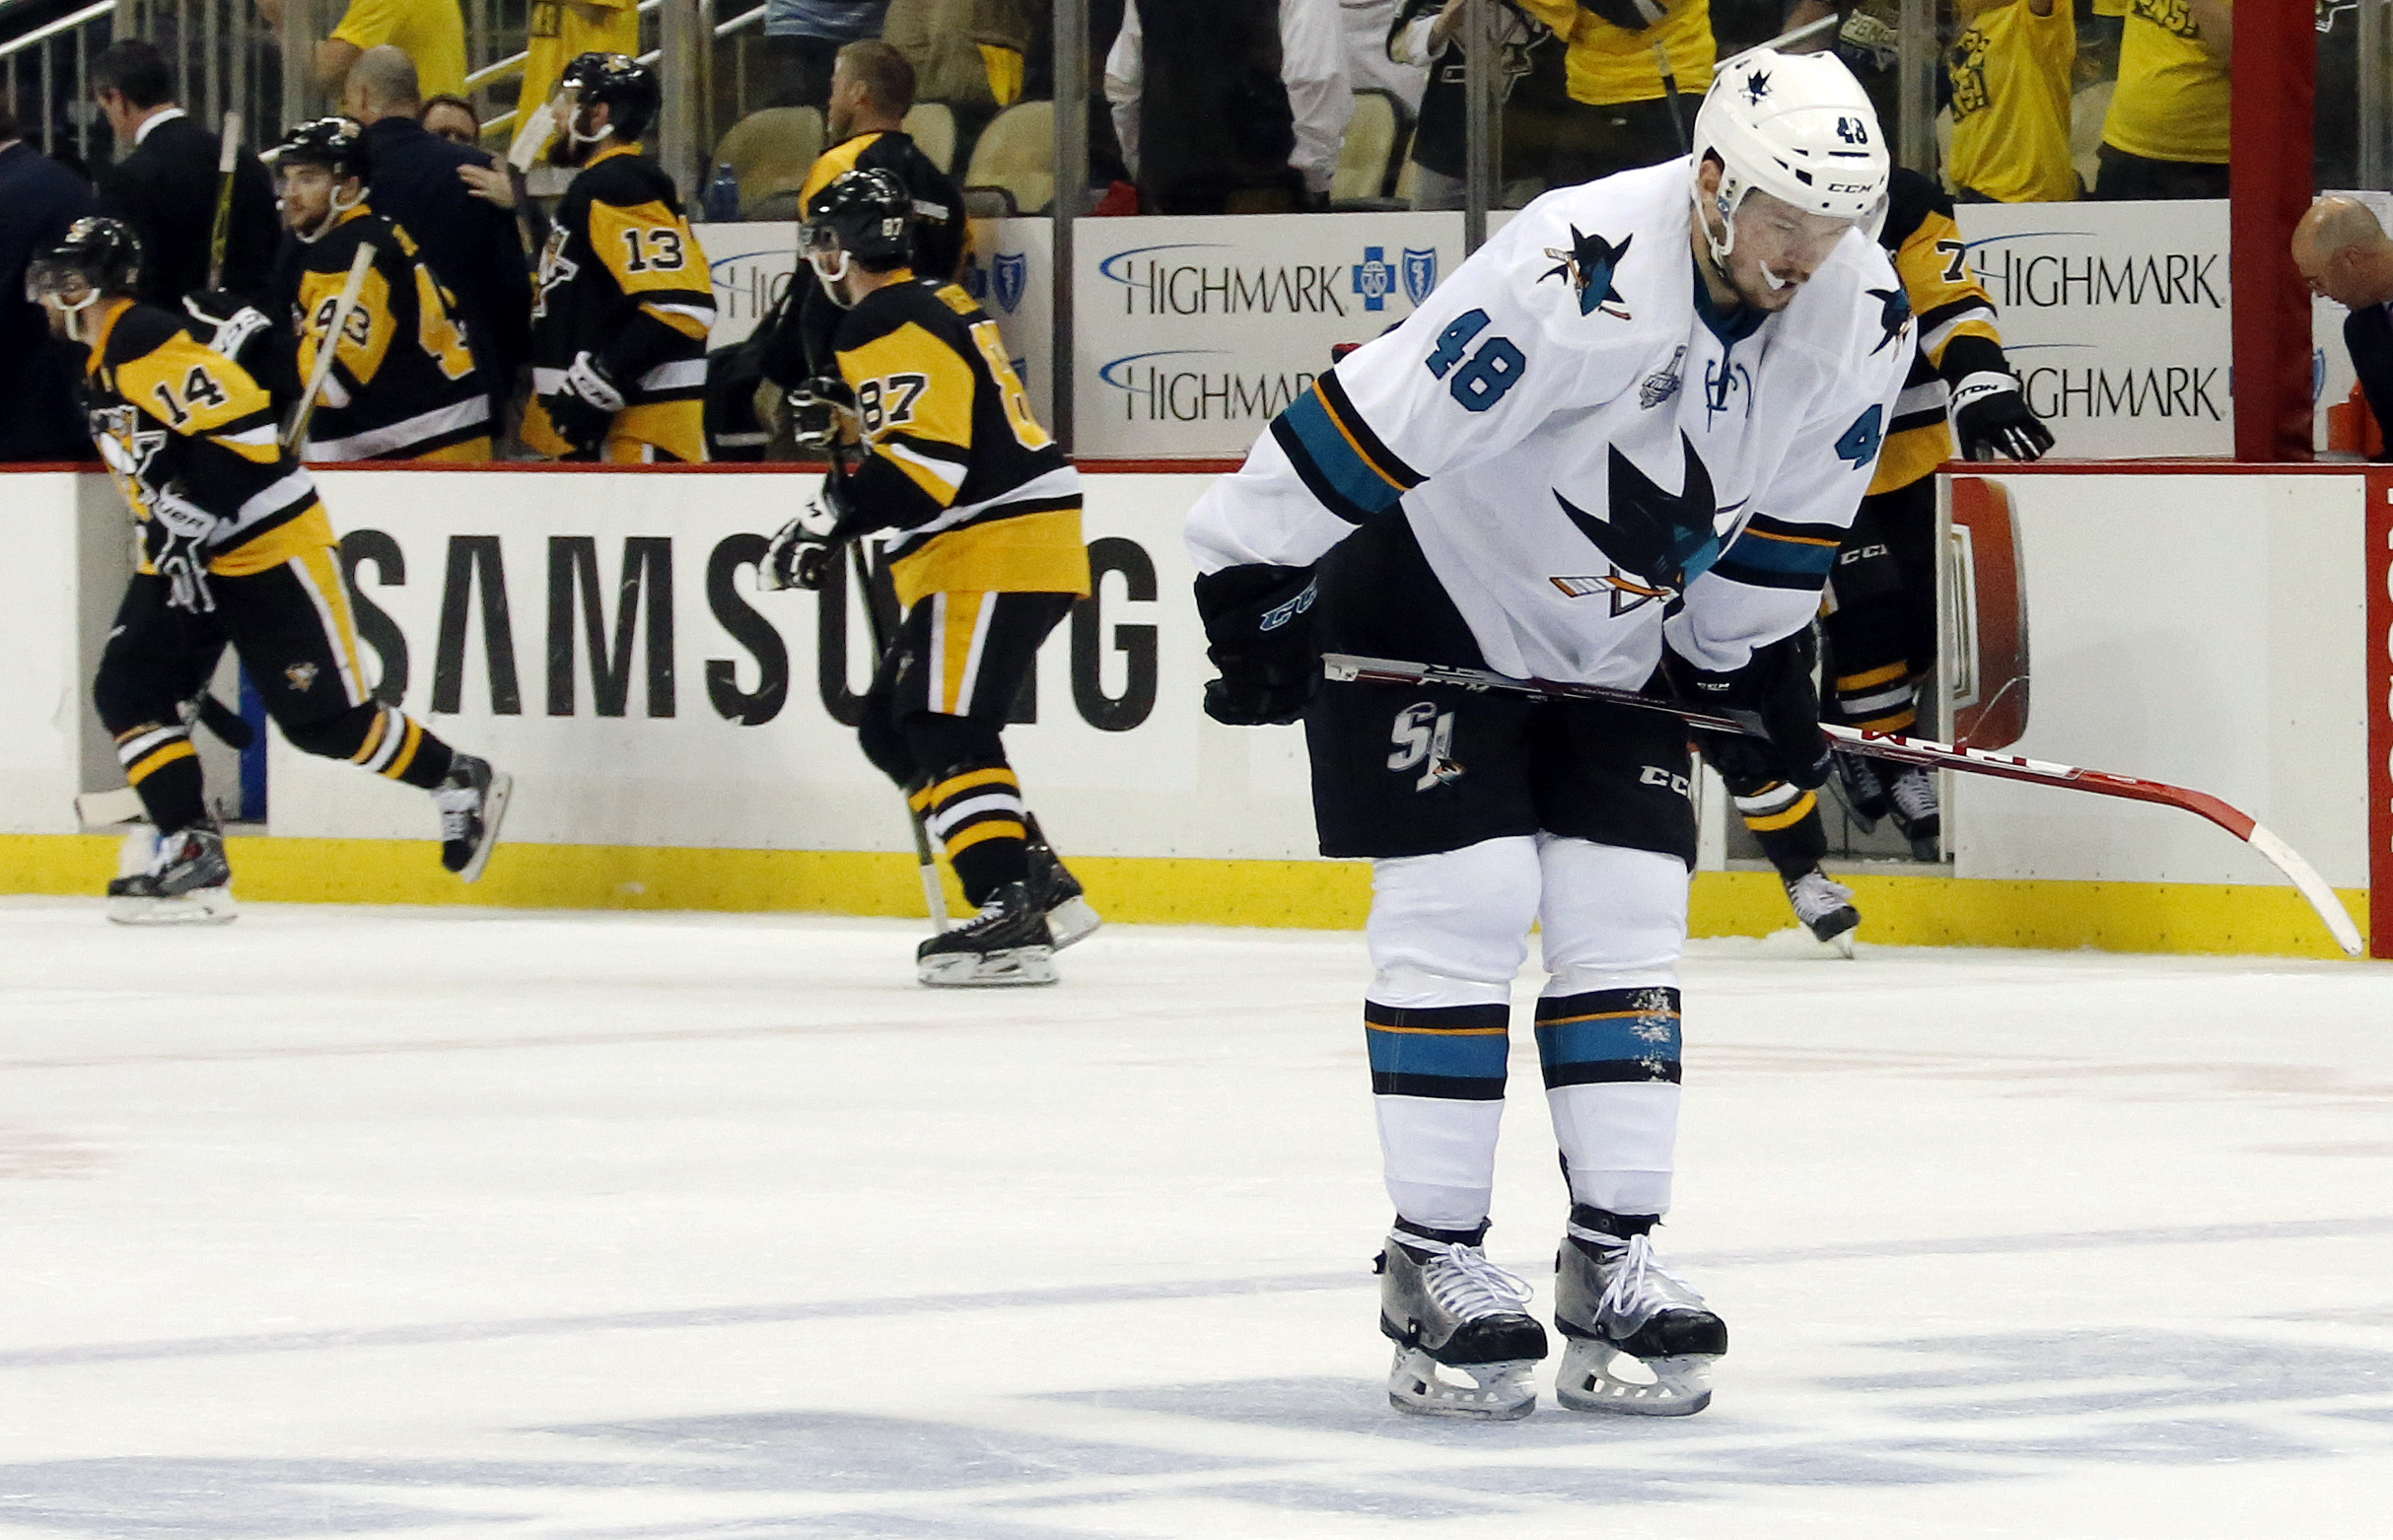 San Jose Sharks' Tomas Hertl, right, skates off the ice after the Pittsburgh Penguins defeated the Sharks 3-2 in Game 1 of the Stanley Cup final series Monday, May 30, 2016, in Pittsburgh. (AP Photo/Keith Srakocic)